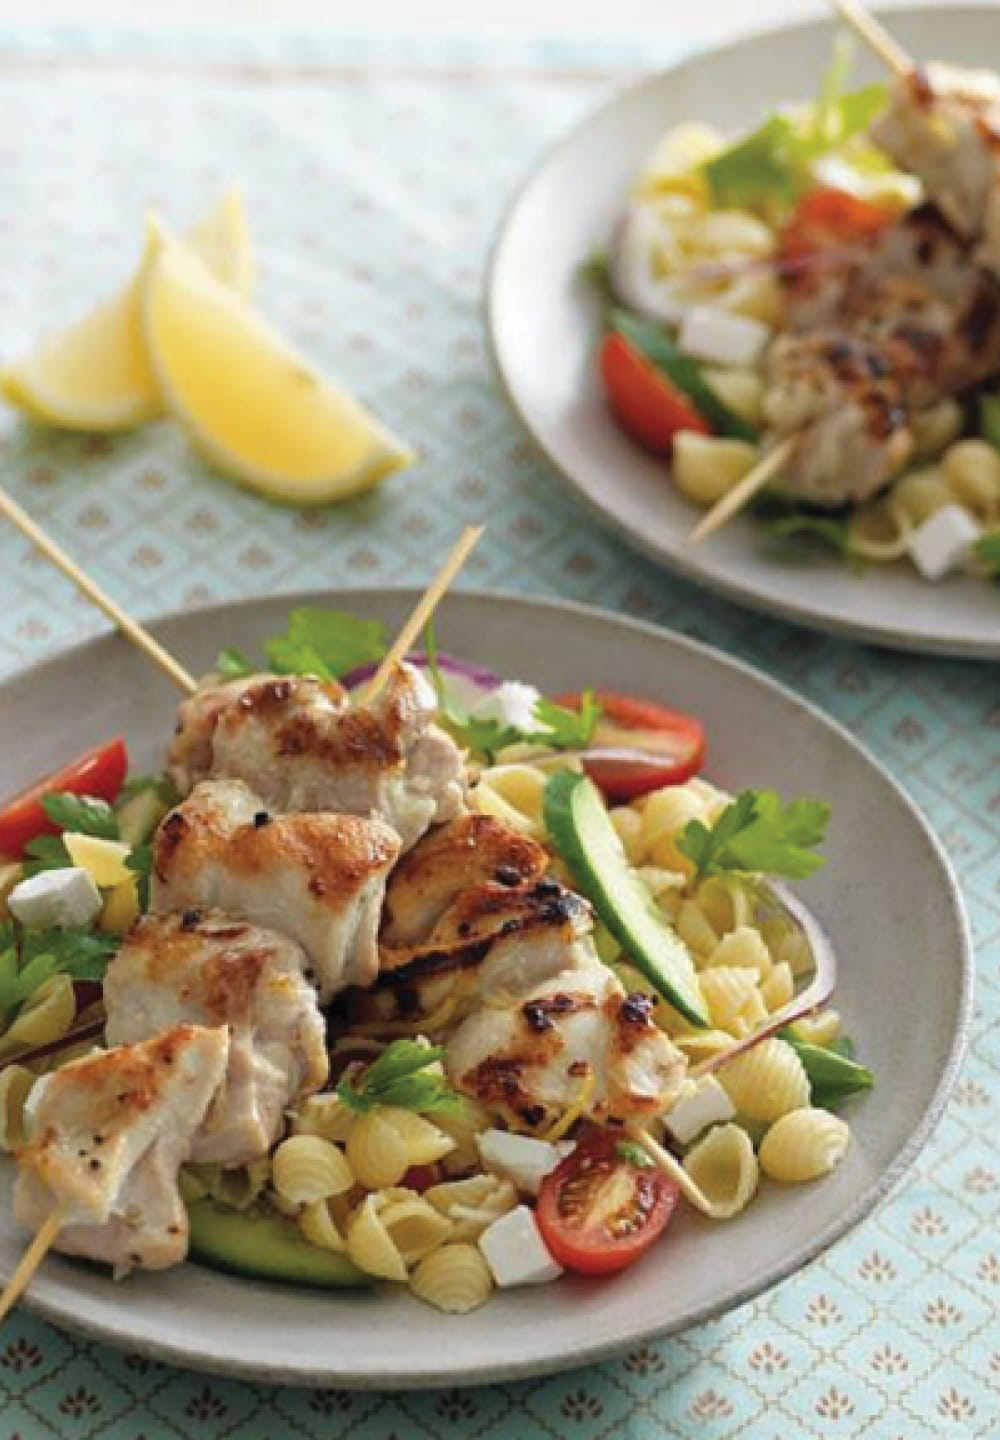 Grilled Chicken Skewers With Pasta Salad